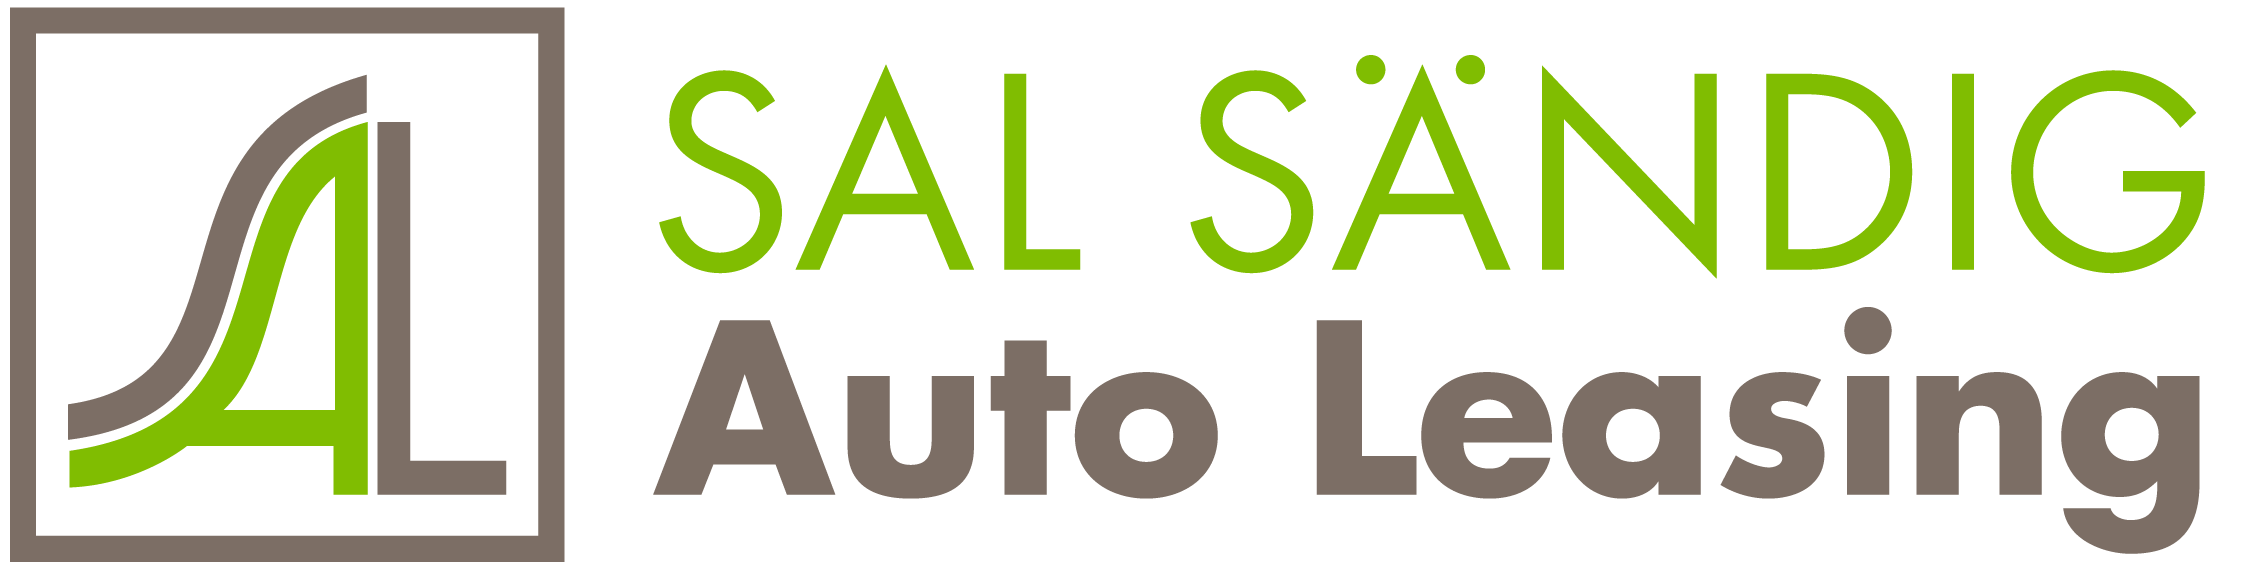 SAL Sändig Auto Leasing GmbH & Co. KG